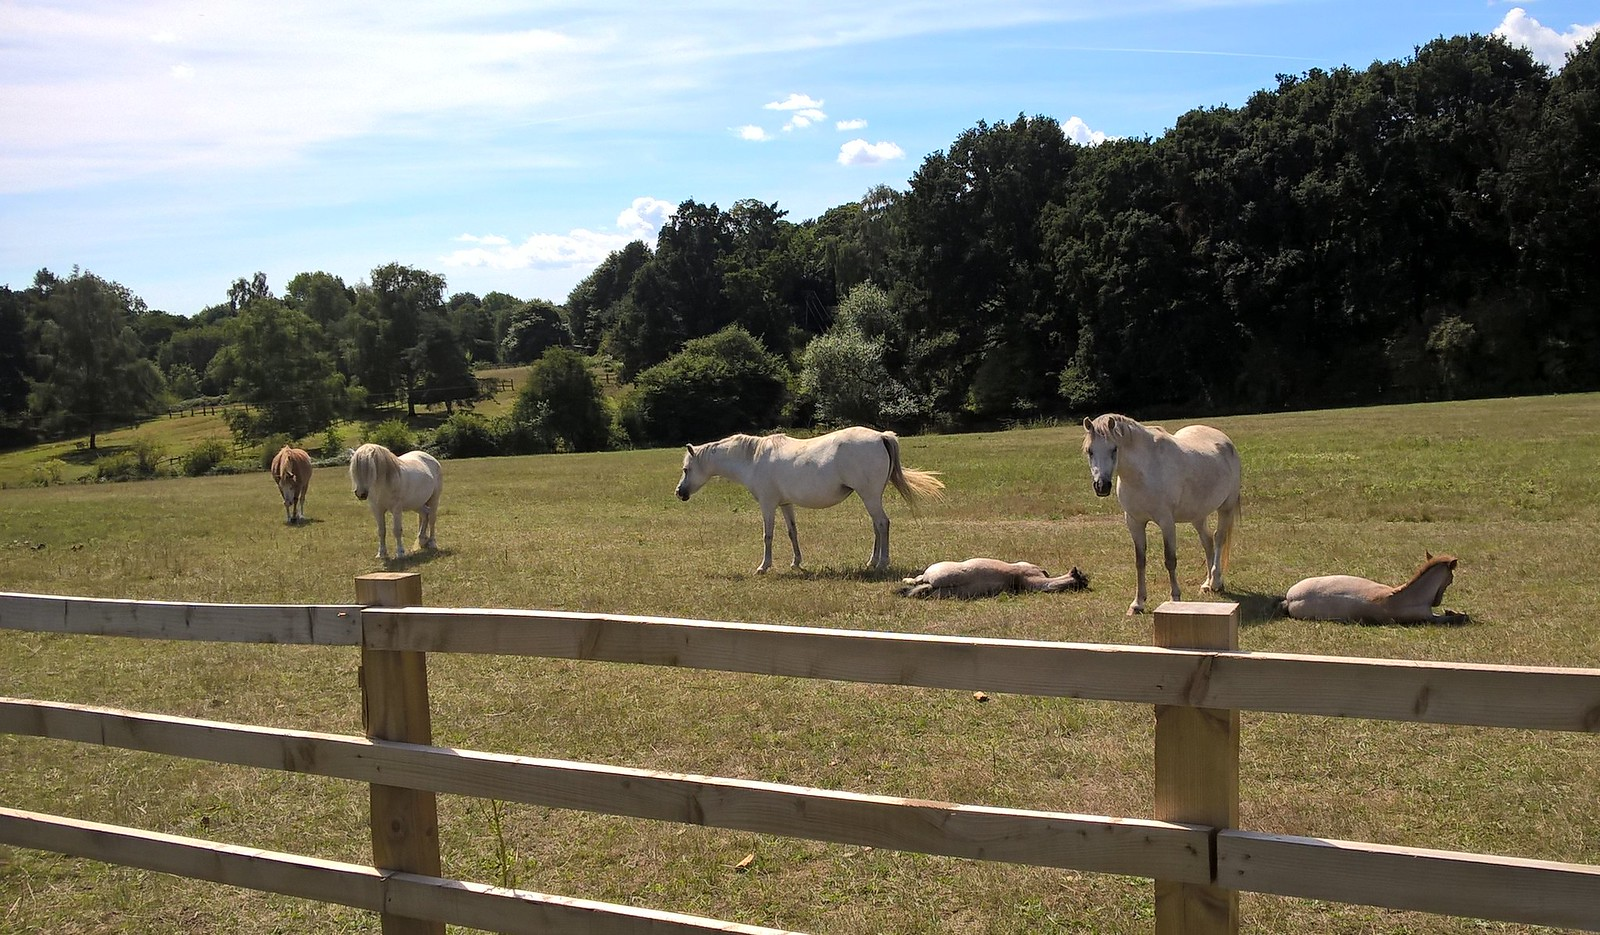 Mares and resting foals